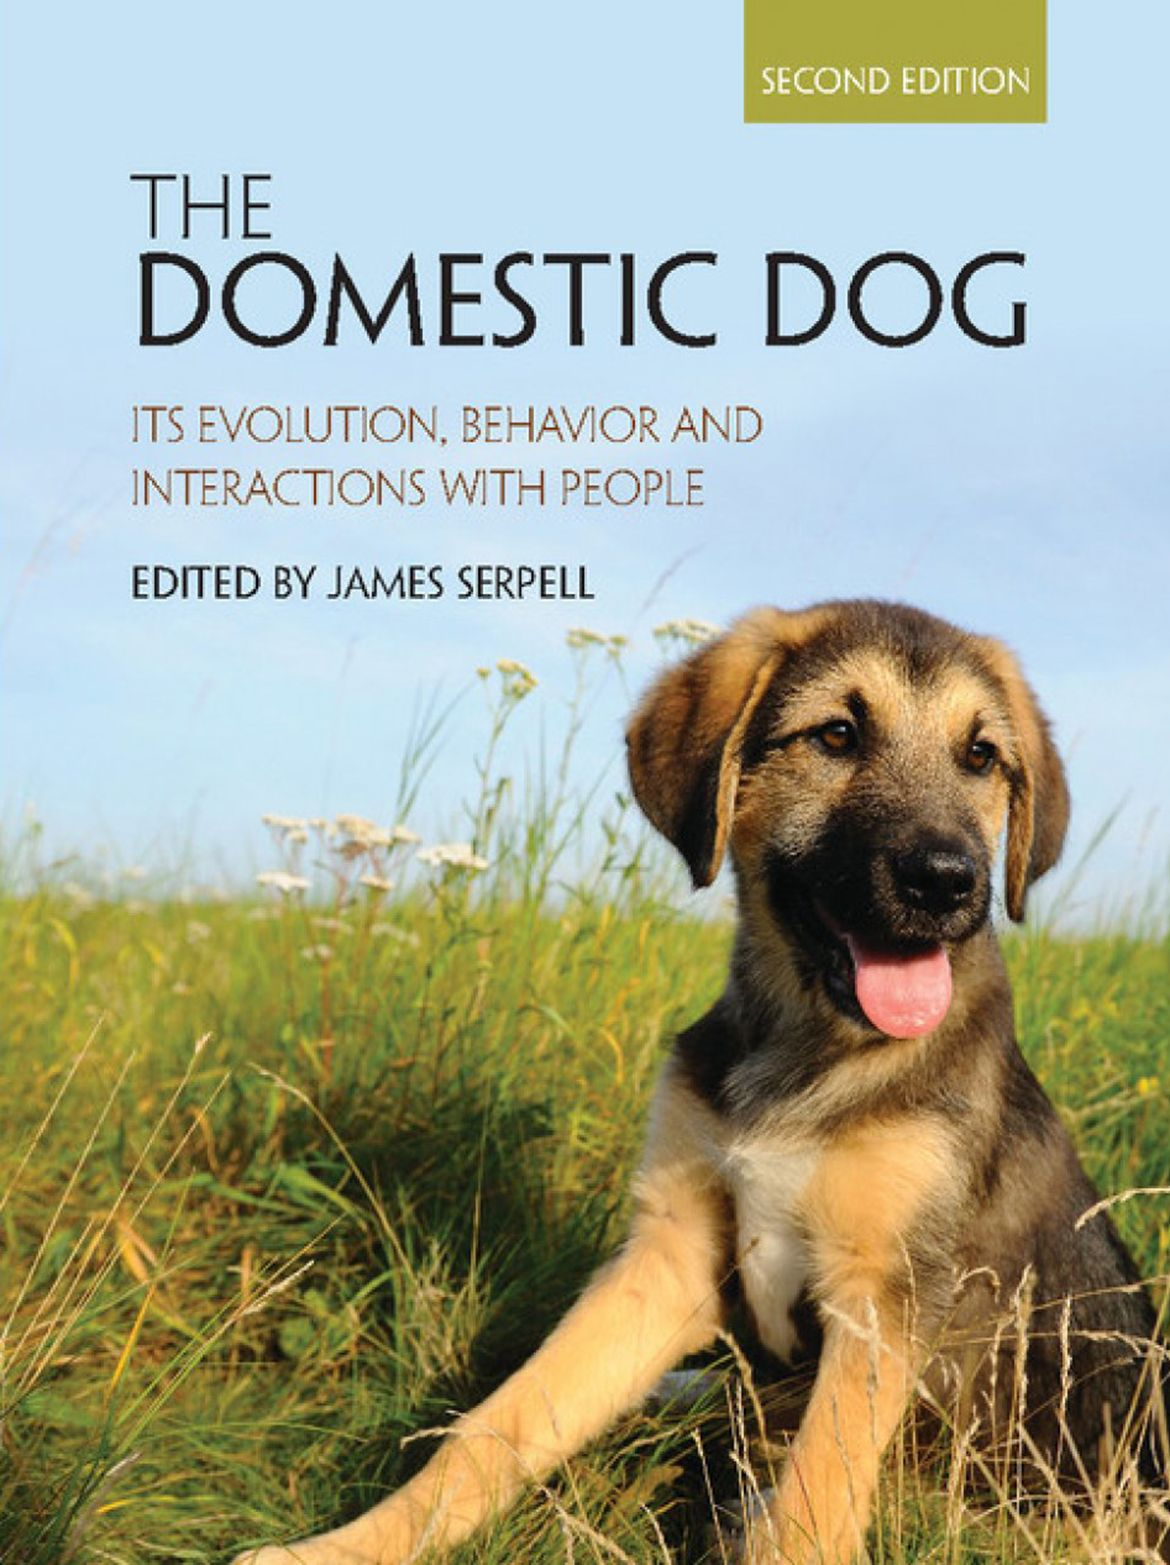 Domestic Dog Dogs Pinterest Popular Books And Dog